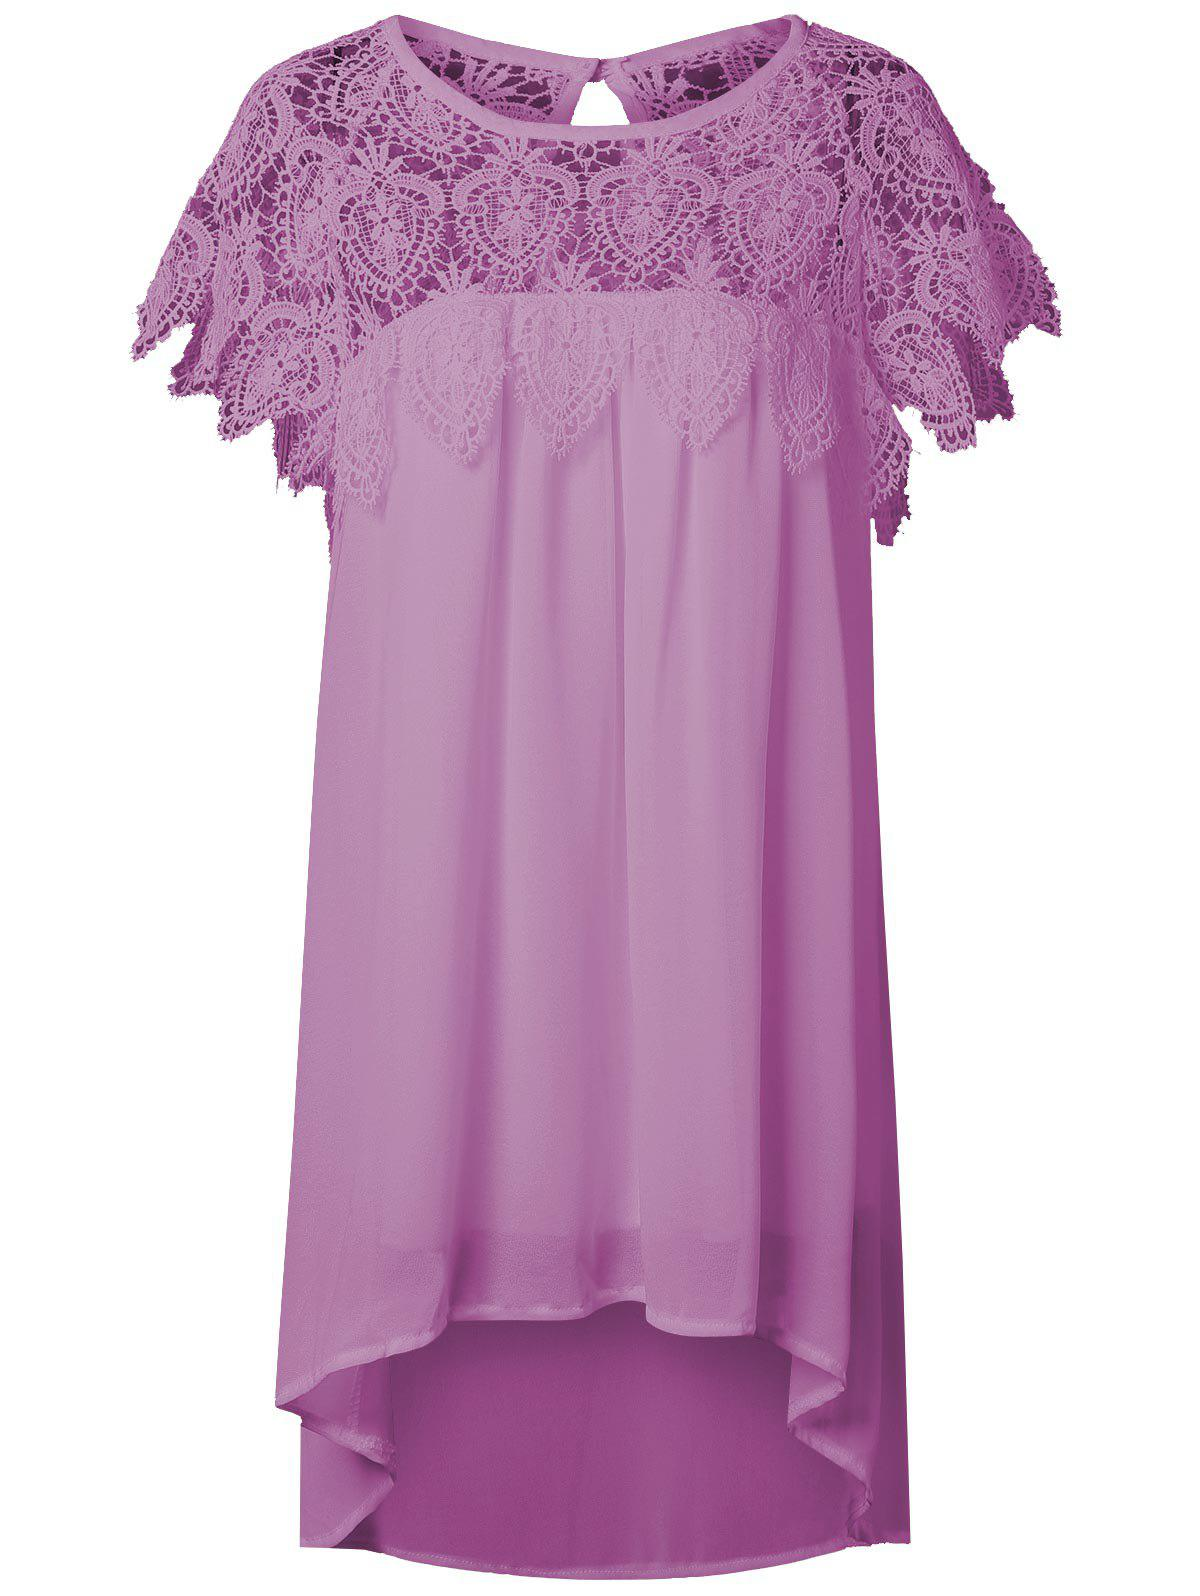 Lace Panel Chiffon Tunic Shift Summer Dress - HOT PINK S